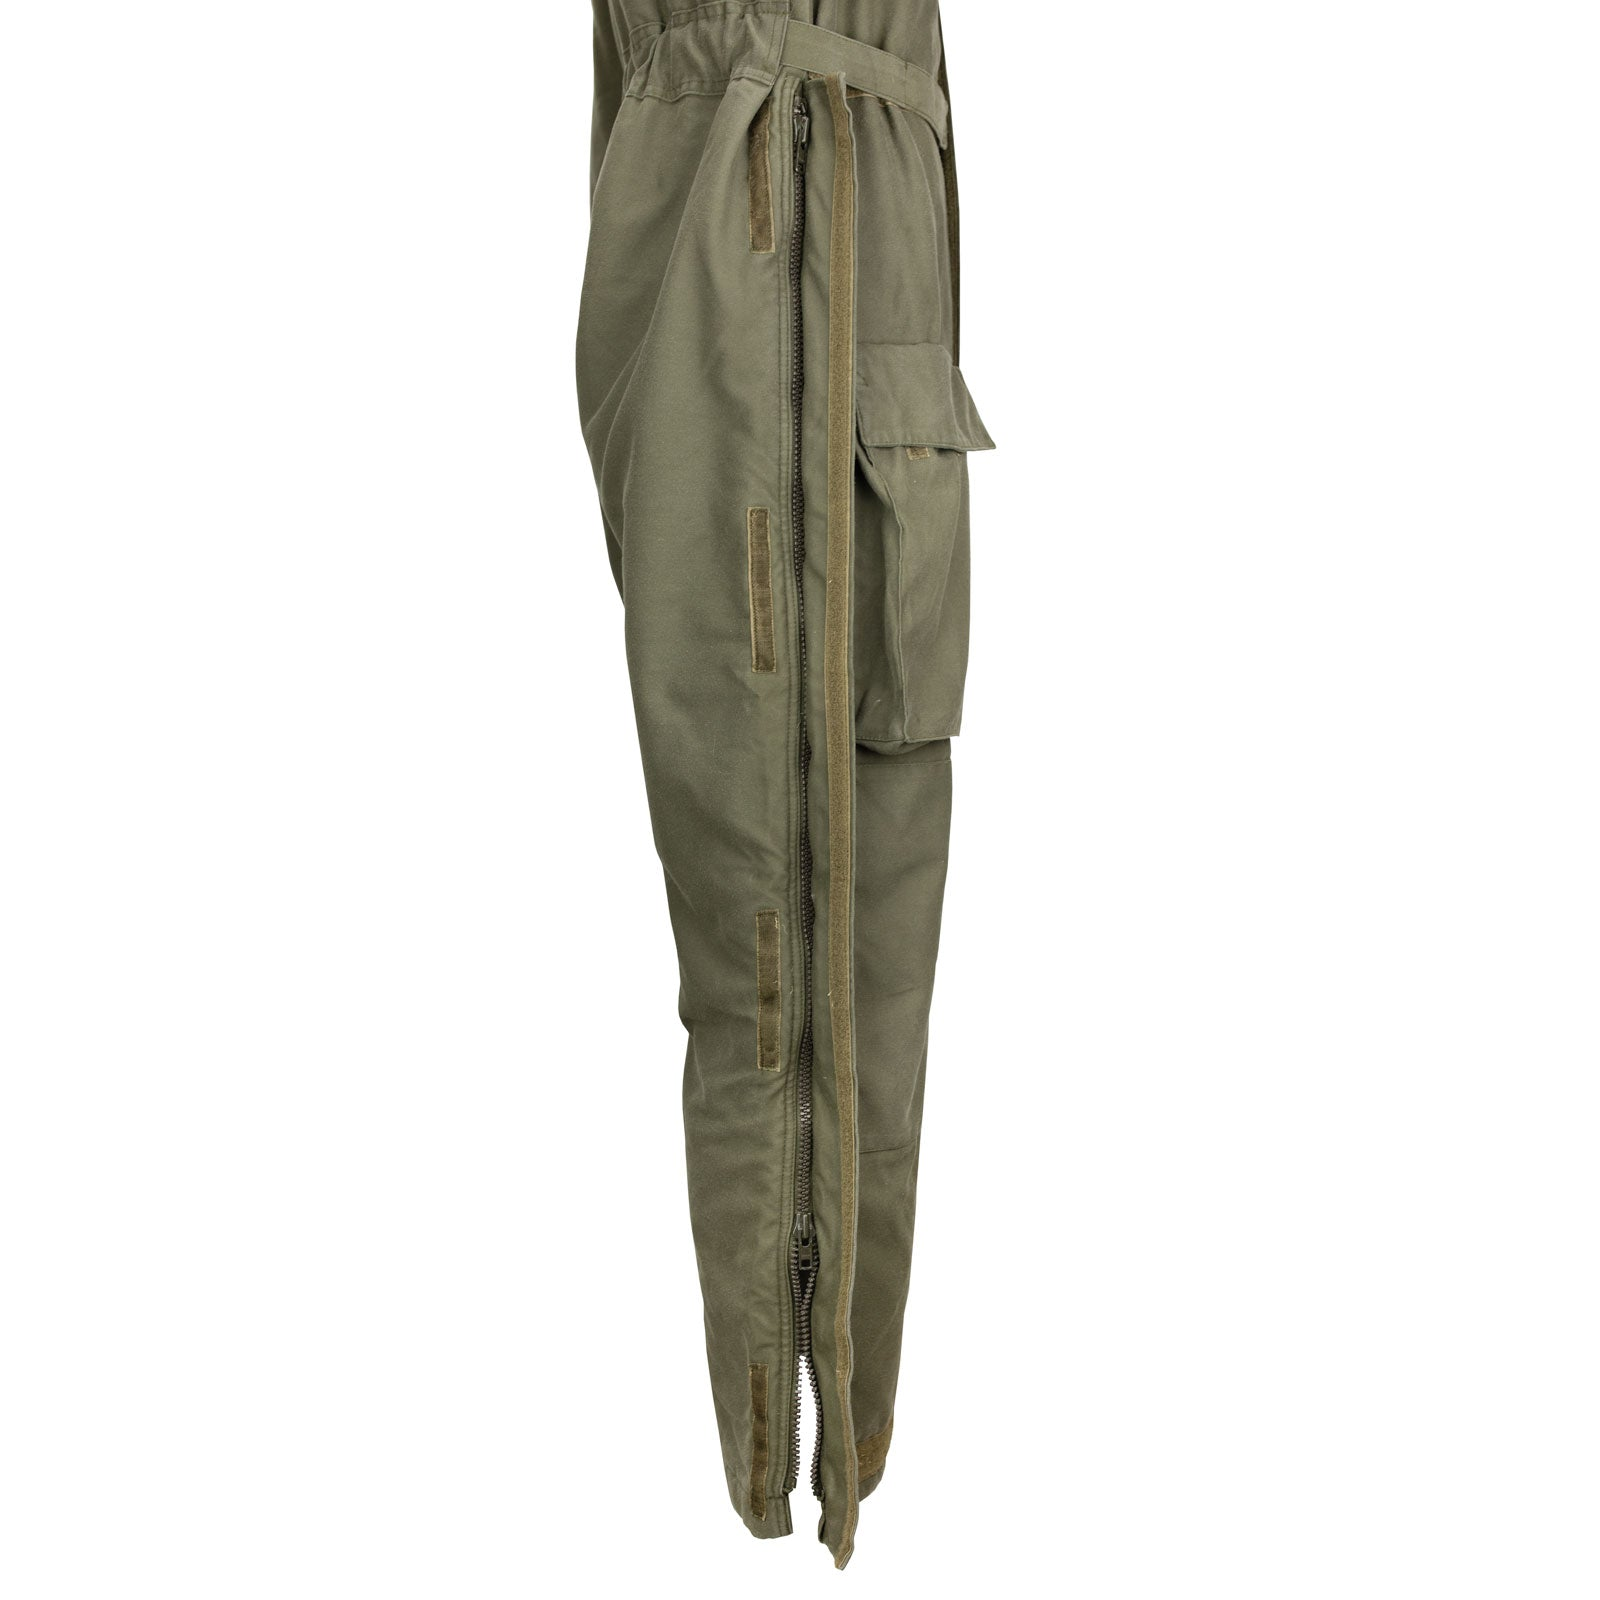 Austrian Army Surplus Cold Weather Thermal Trousers